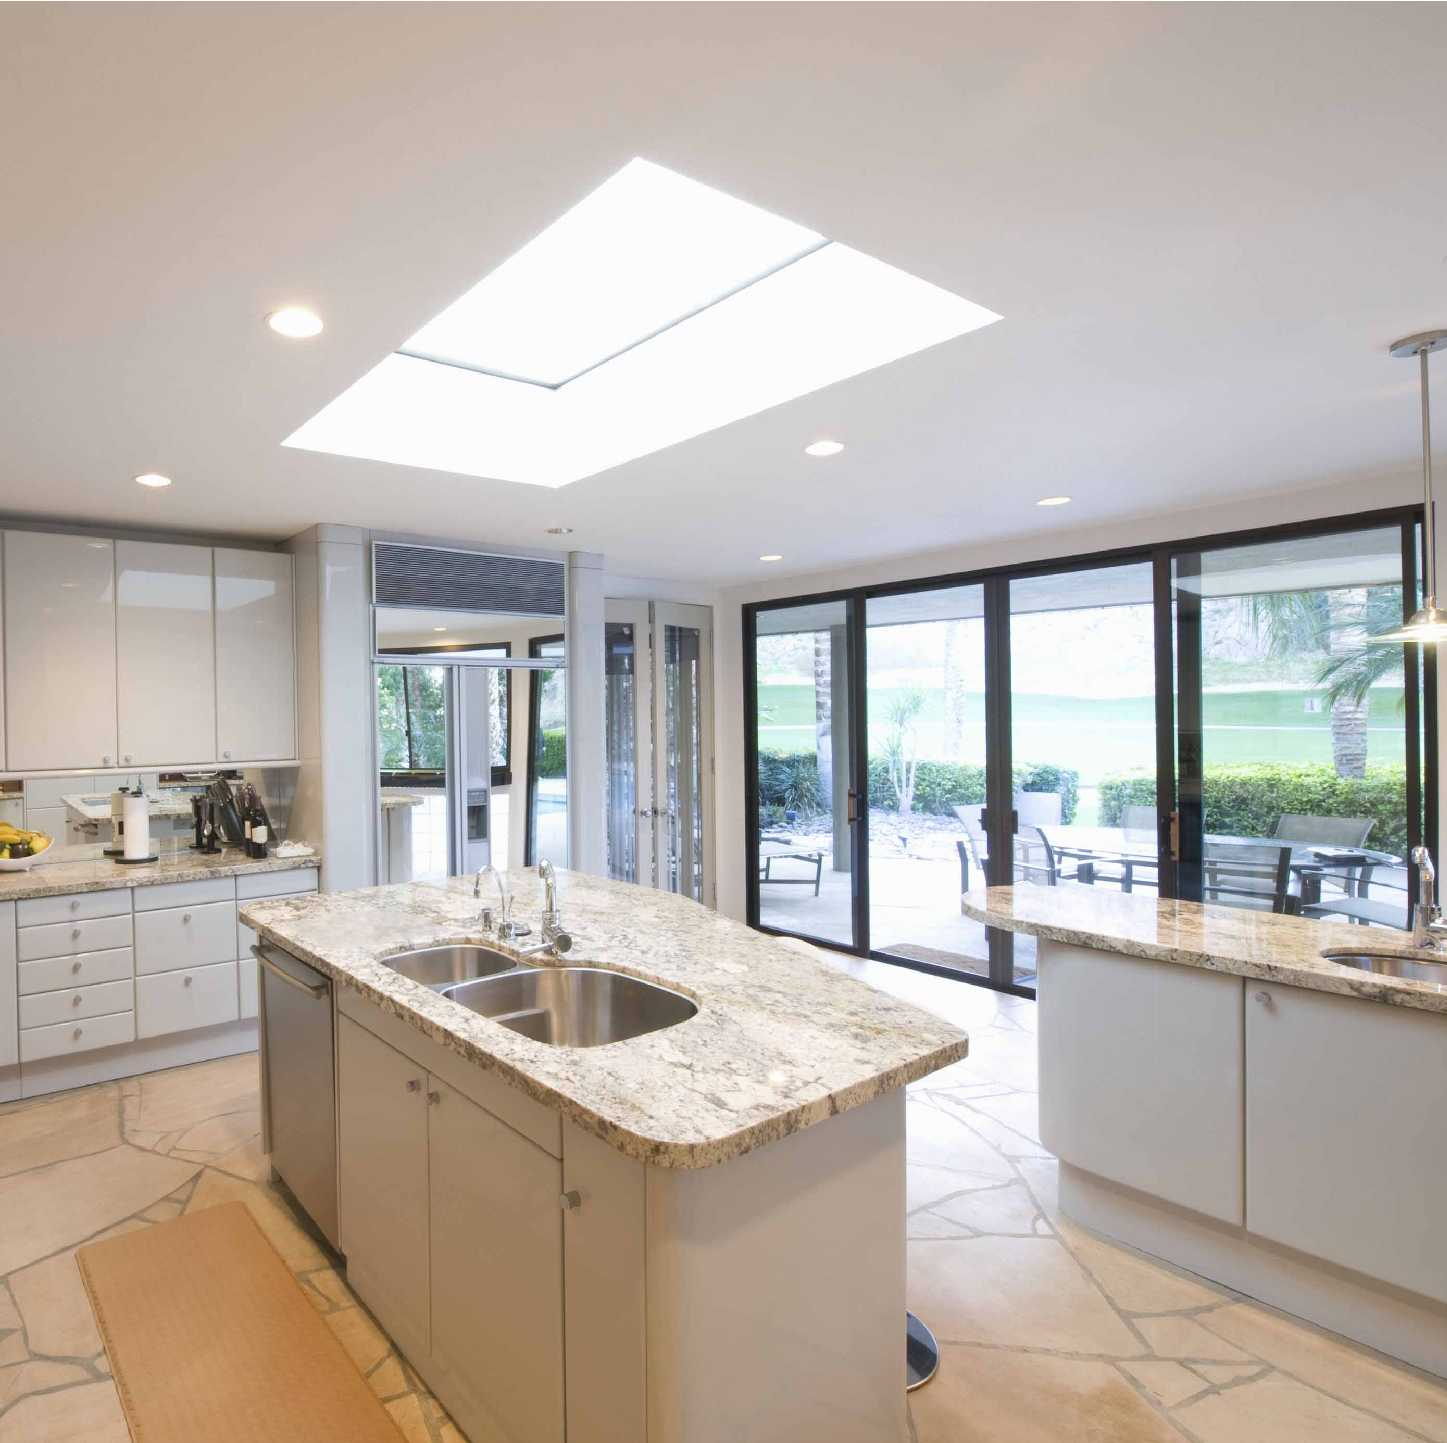 EcoGard Flat Roof light, Double Glazed, Electric Opening, 1,000mm x 1,500mm